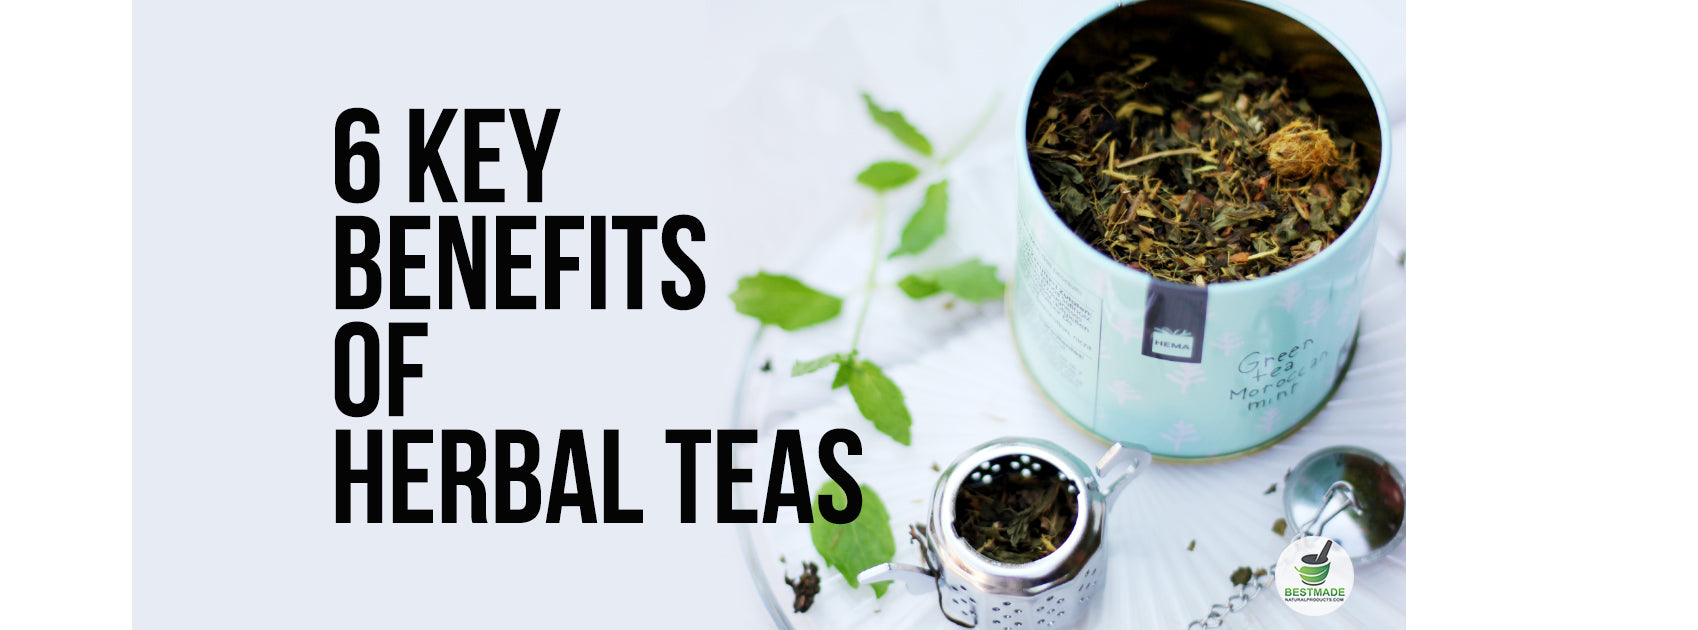 Key Benefits Of 6 Herbal Teas